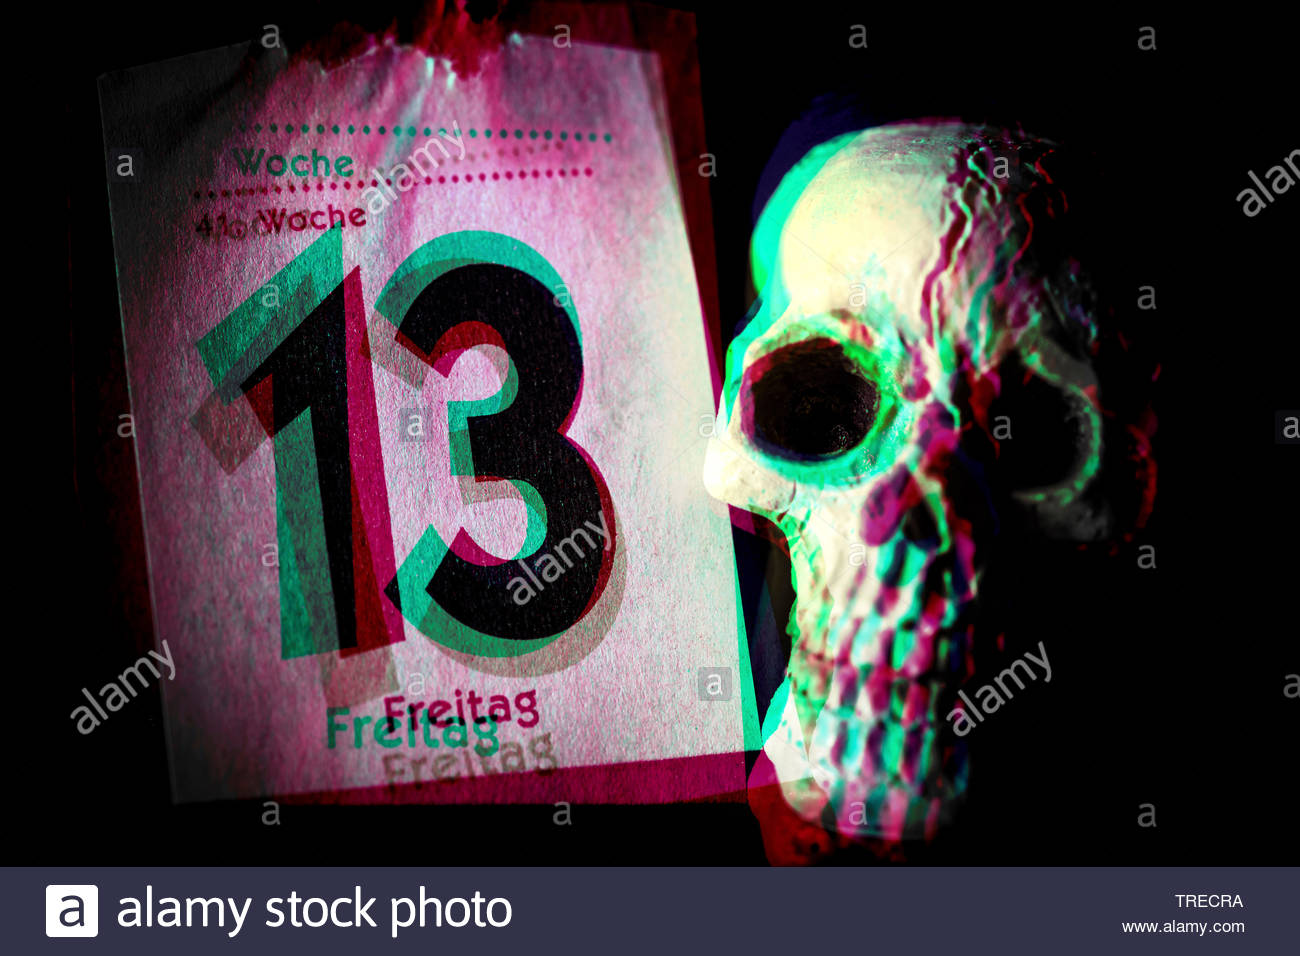 Kalenderblatt Freitag der 13. und Totenkopf, Deutschland | calender sheet Friday the 13th and skull, Germany | BLWS523137.jpg [ (c) blickwinkel/McPHOT - Stock Image